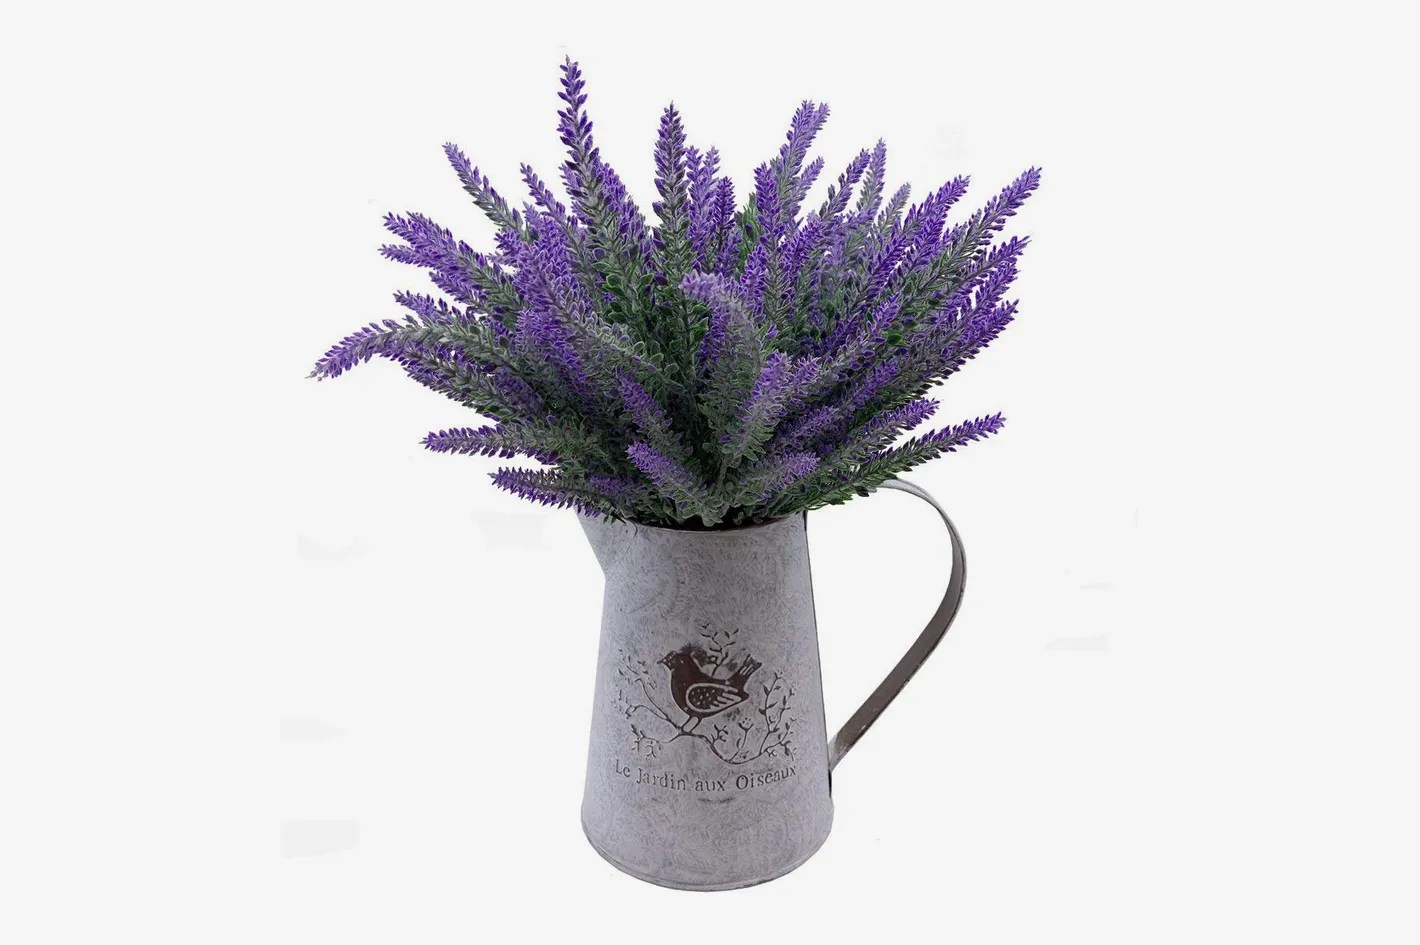 Salon De Jardin Made In France Vancore French Style Shabby Chic Vase Metal Pitcher With 6 Pcs Lavender Flowers